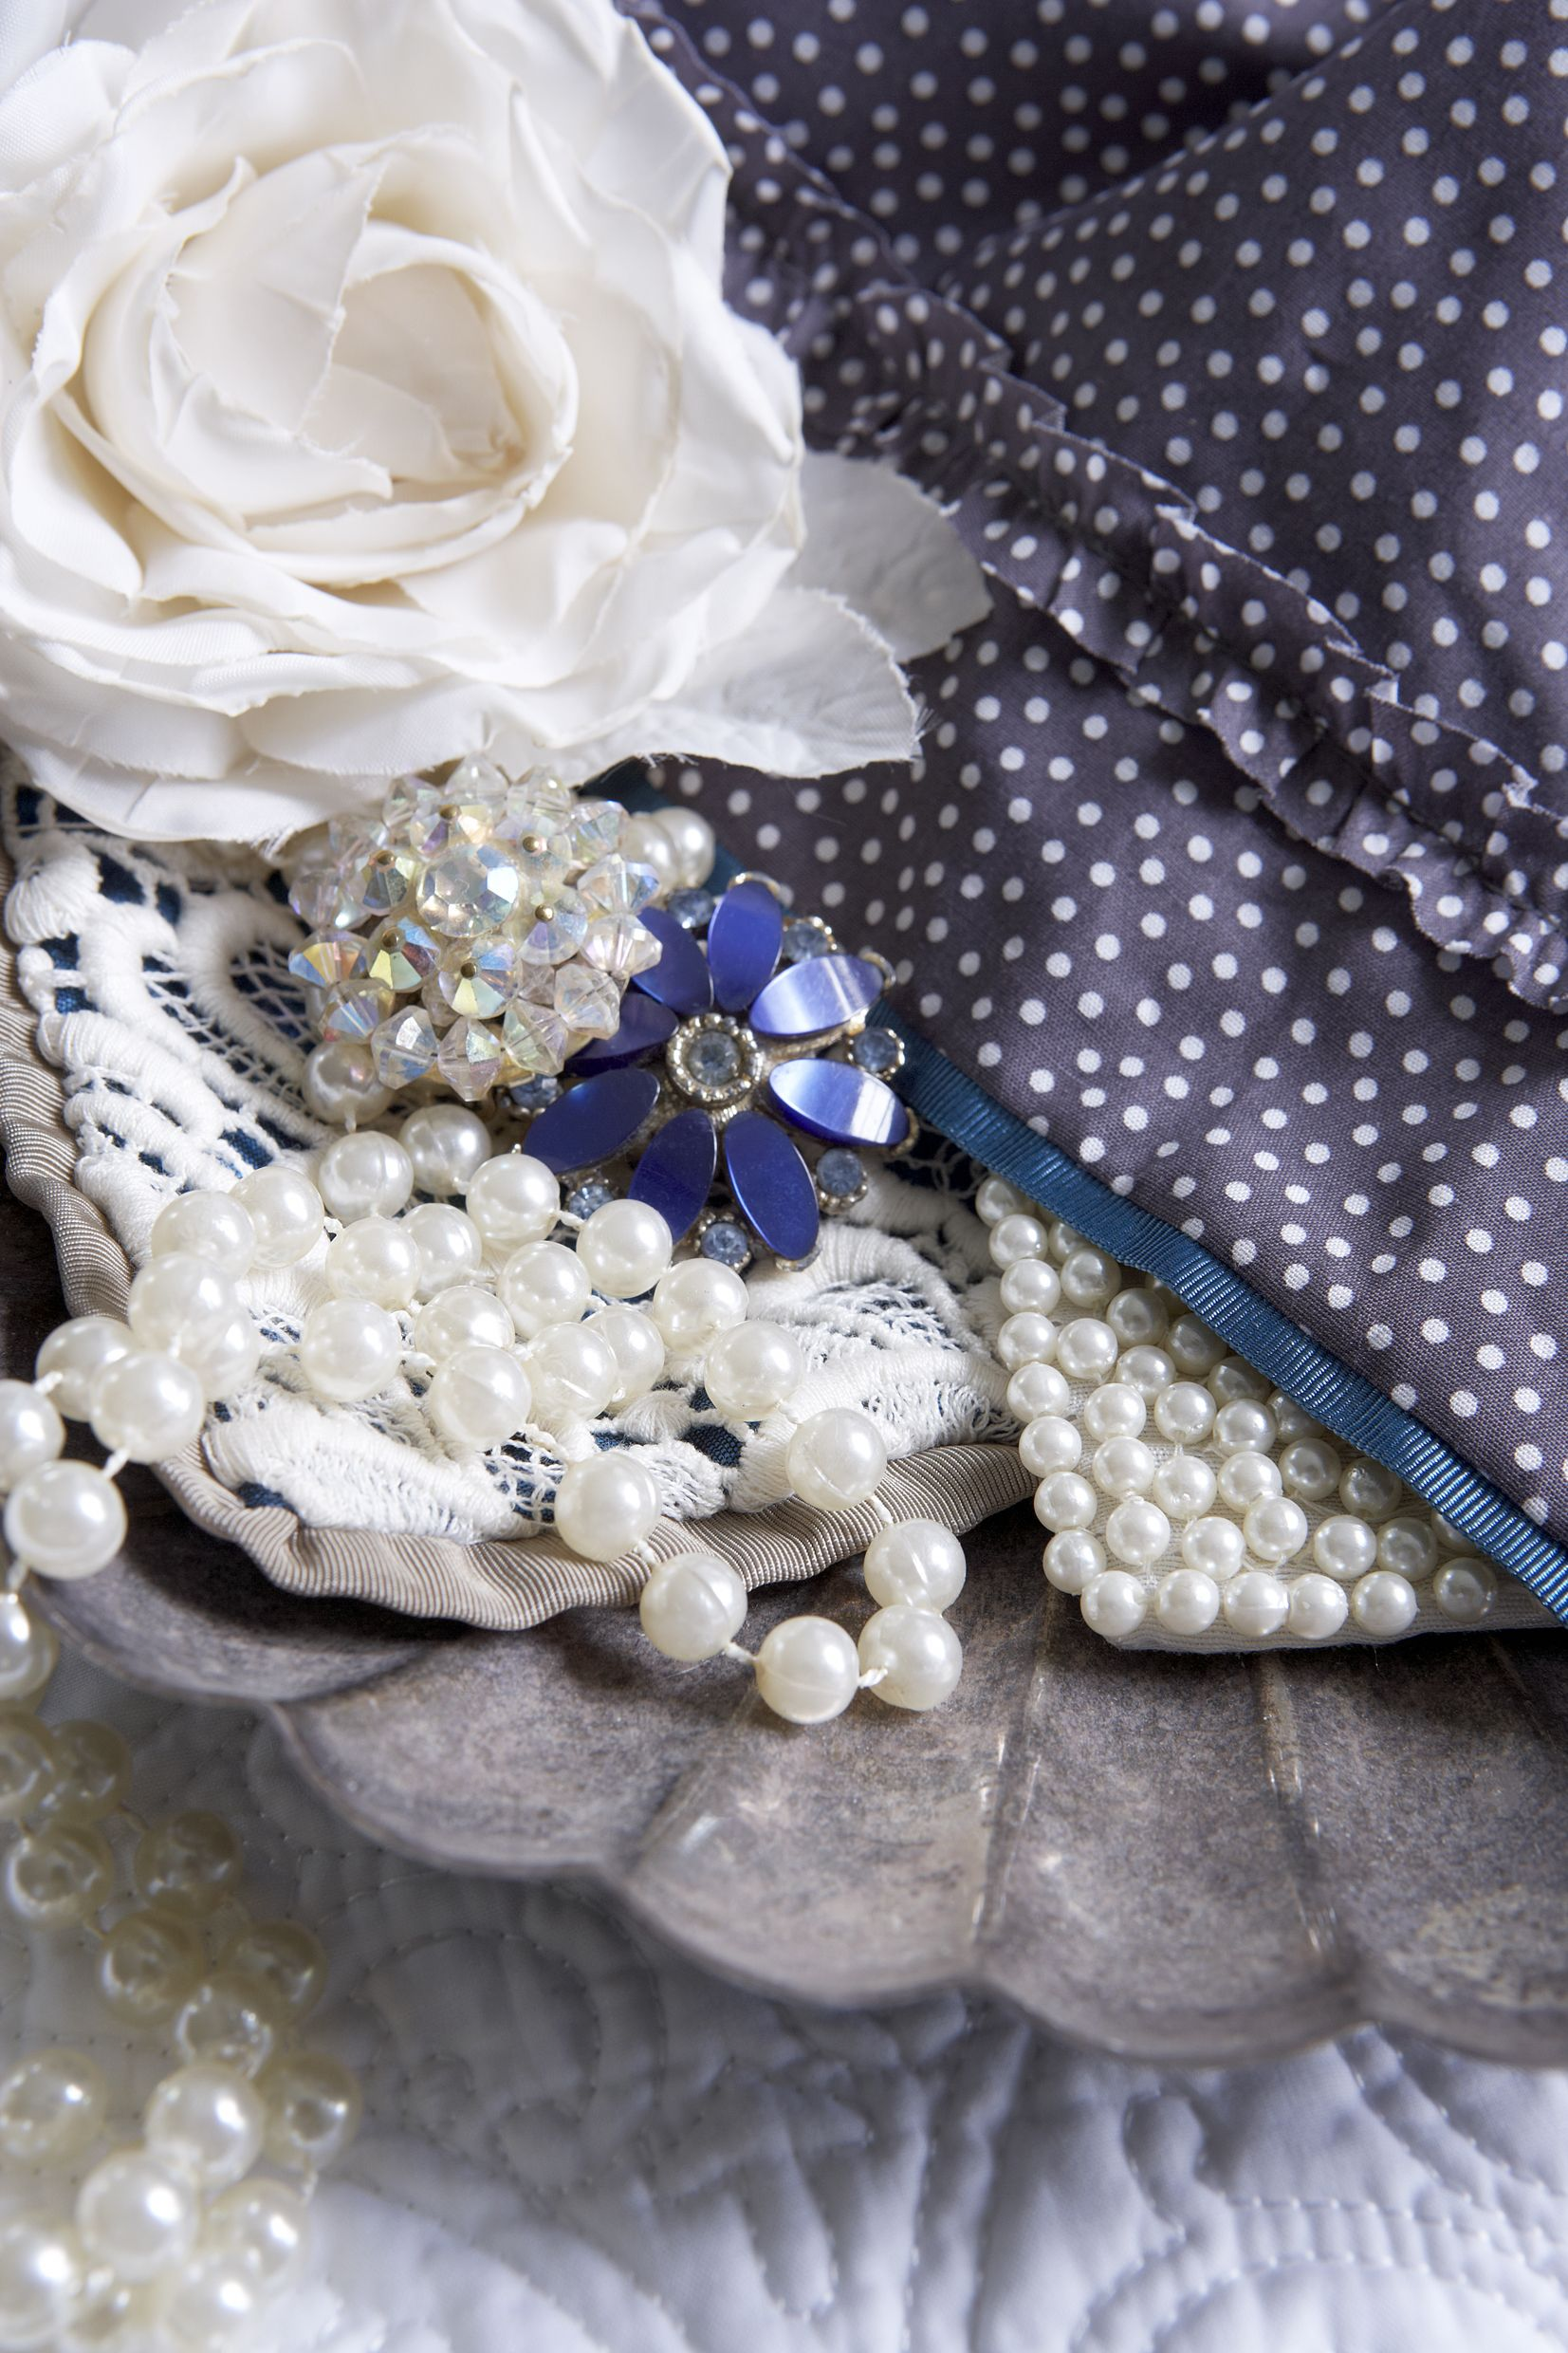 roses and pearls a girls best friend